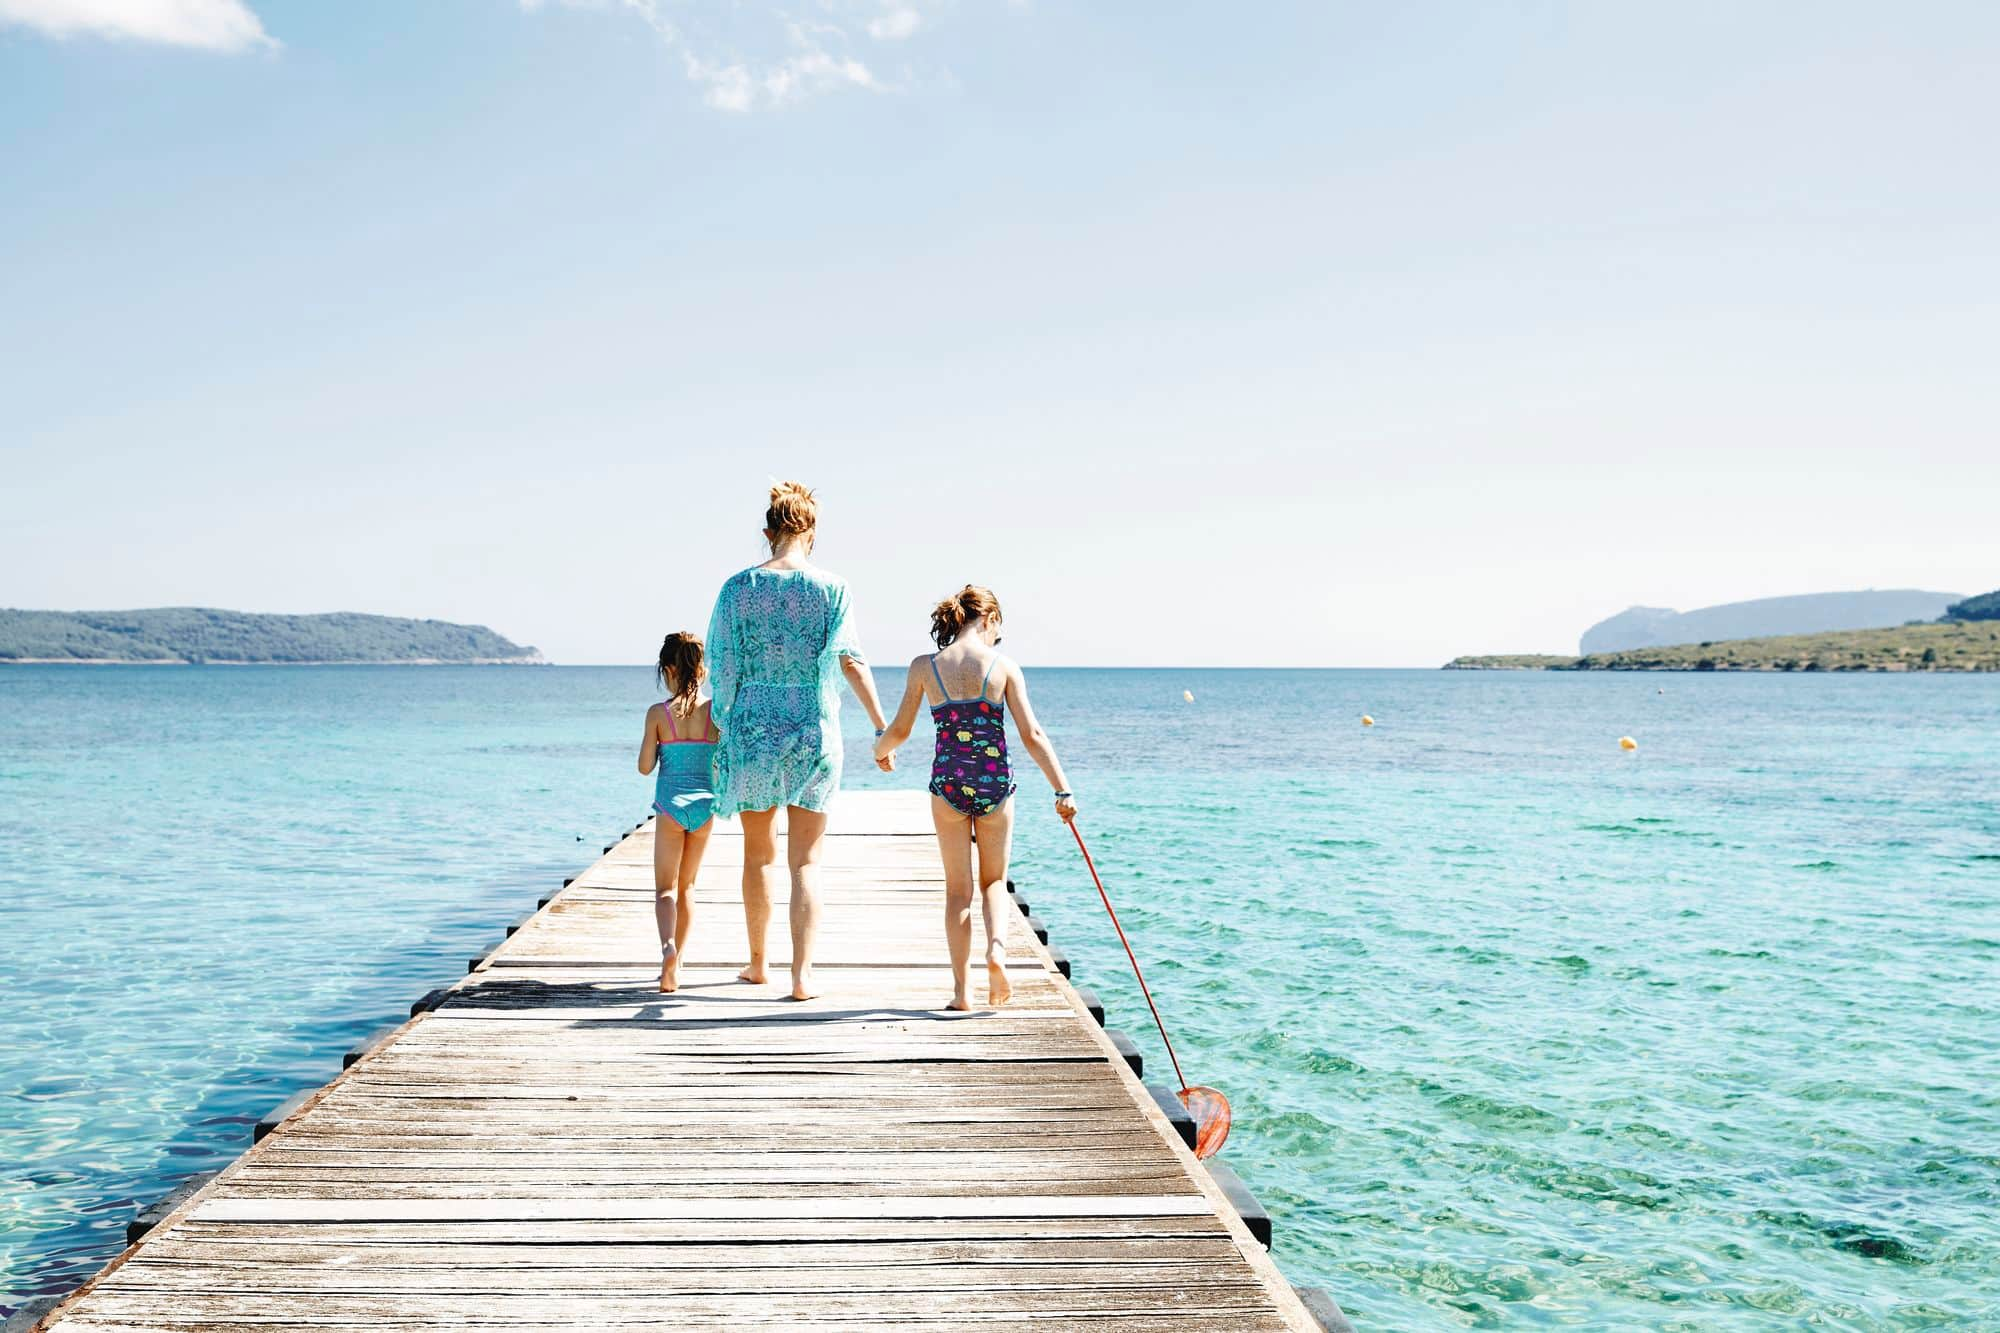 Cheapest places to travel in summer 2020